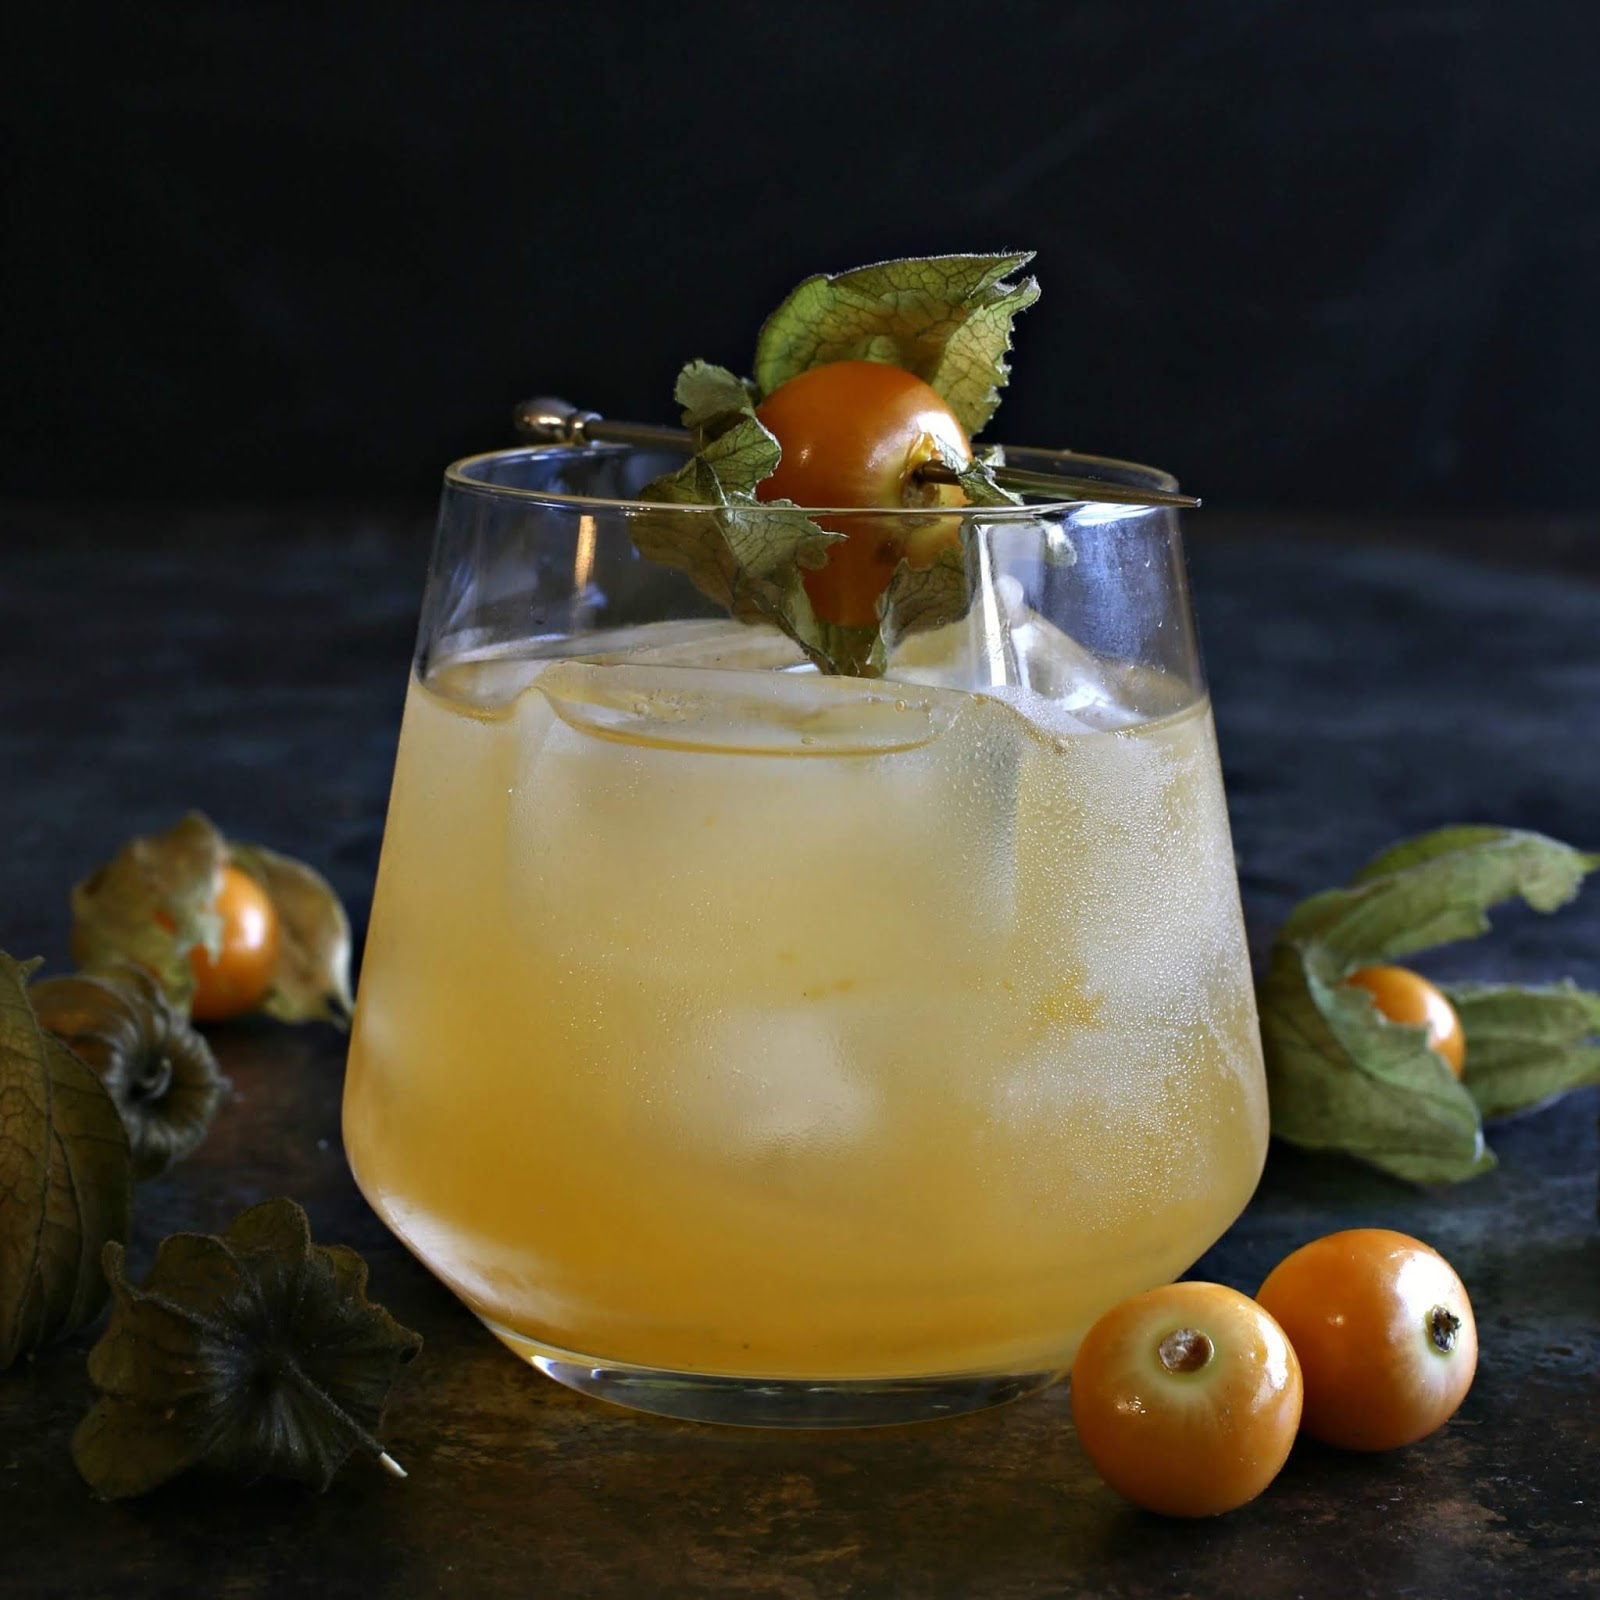 Gin cocktail flavored with fresh cape gooseberries and elderflower liqueur.